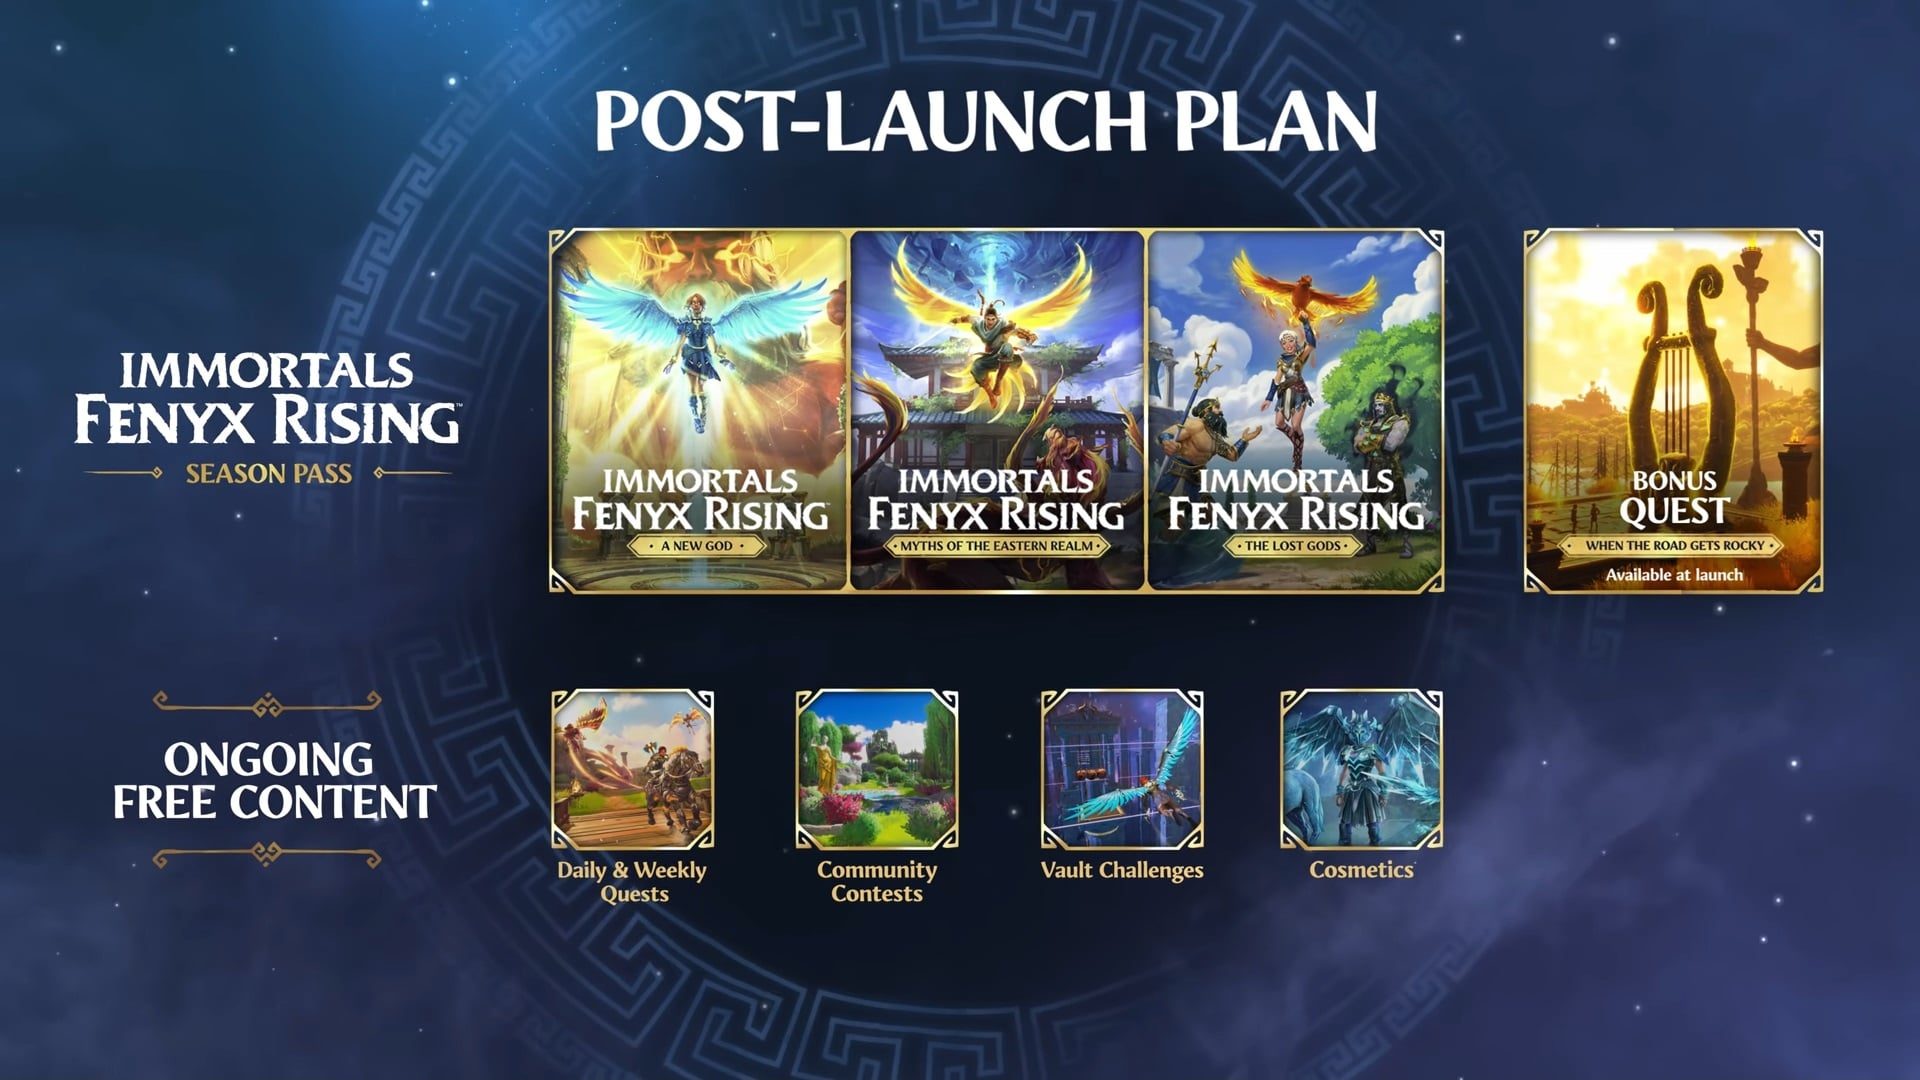 Season Pass and post-launch content